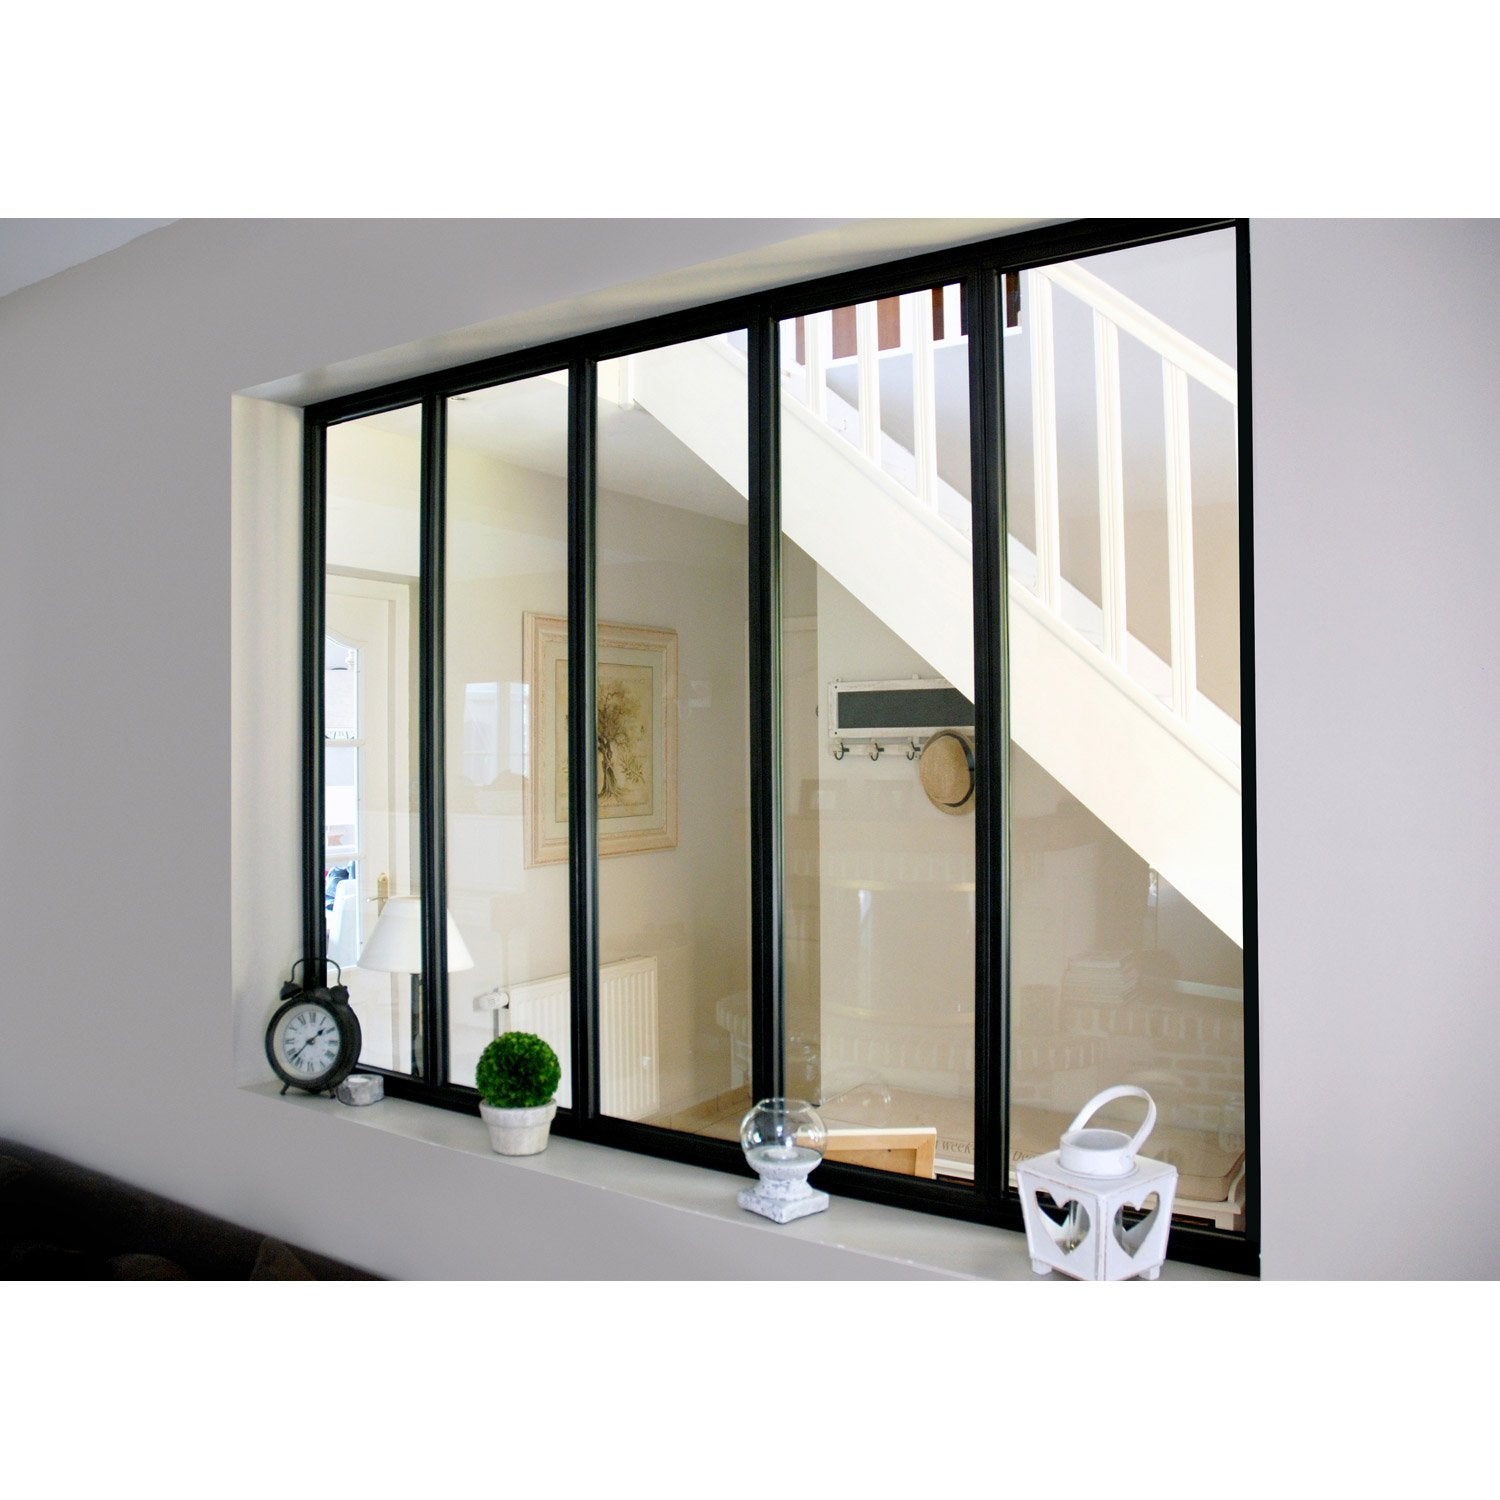 Verri re d 39 int rieur atelier en kit aluminium noir 5 for Prix pose escalier leroy merlin